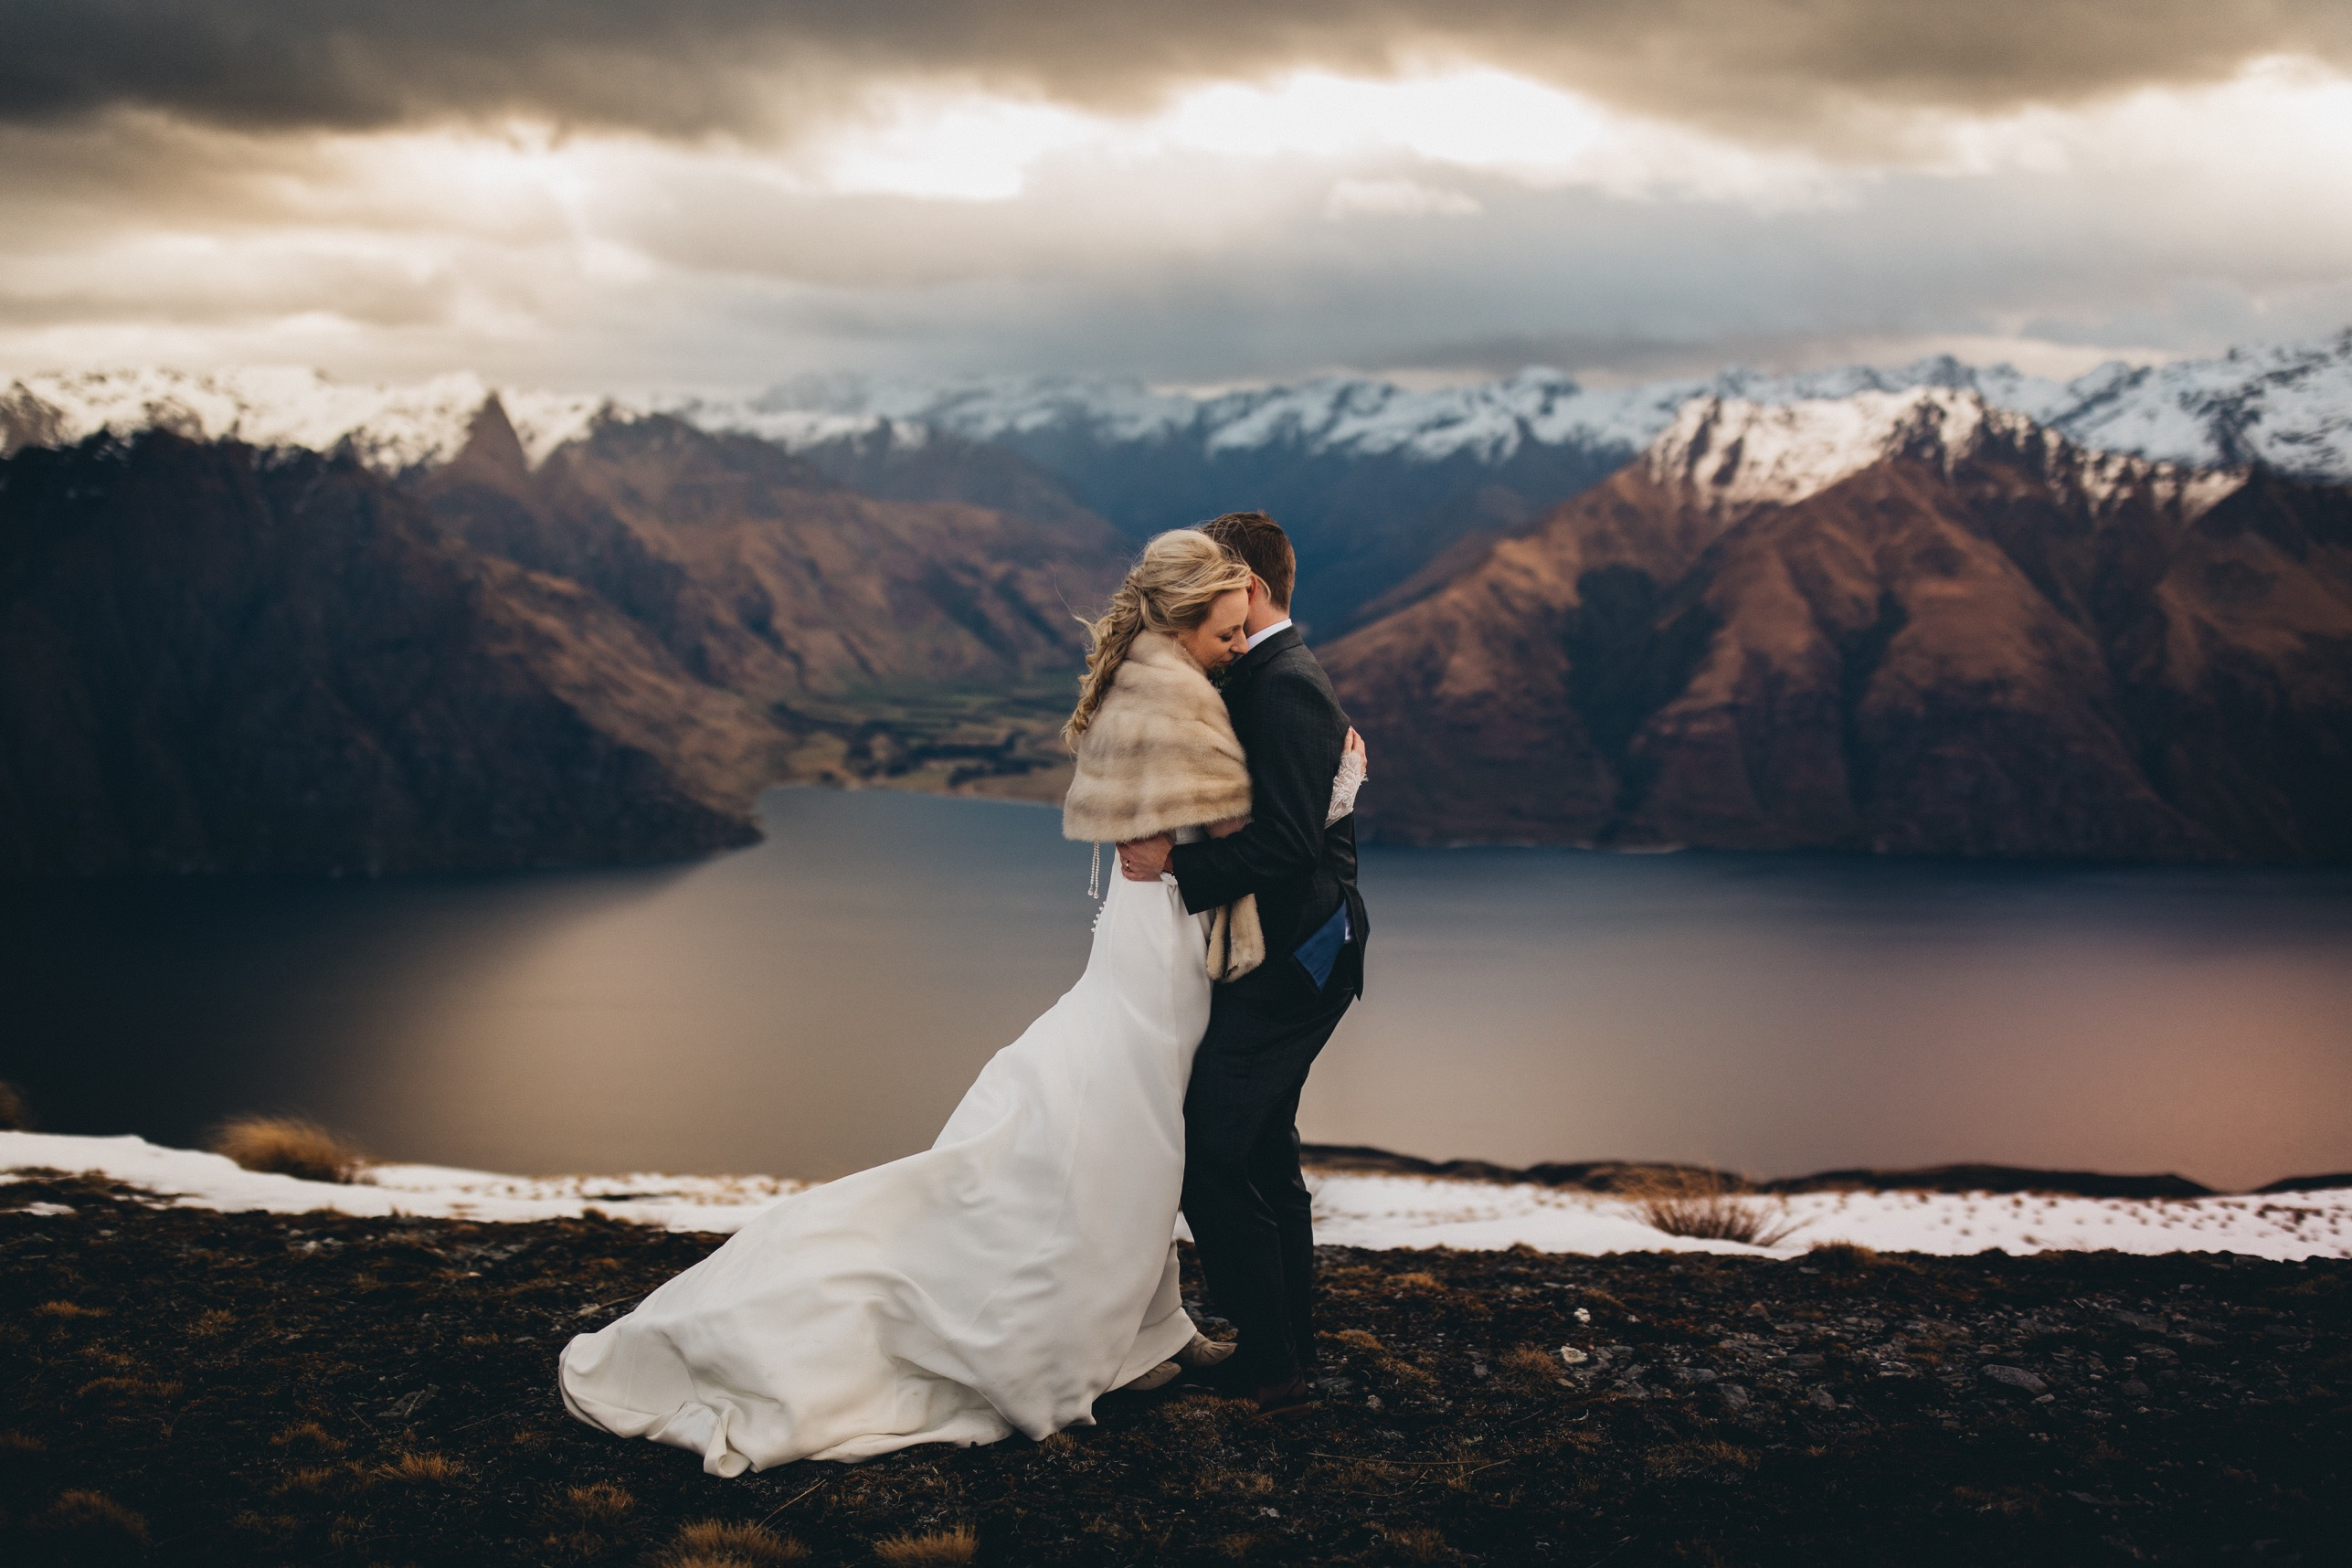 Epic destination wedding with heli mountaintop photos